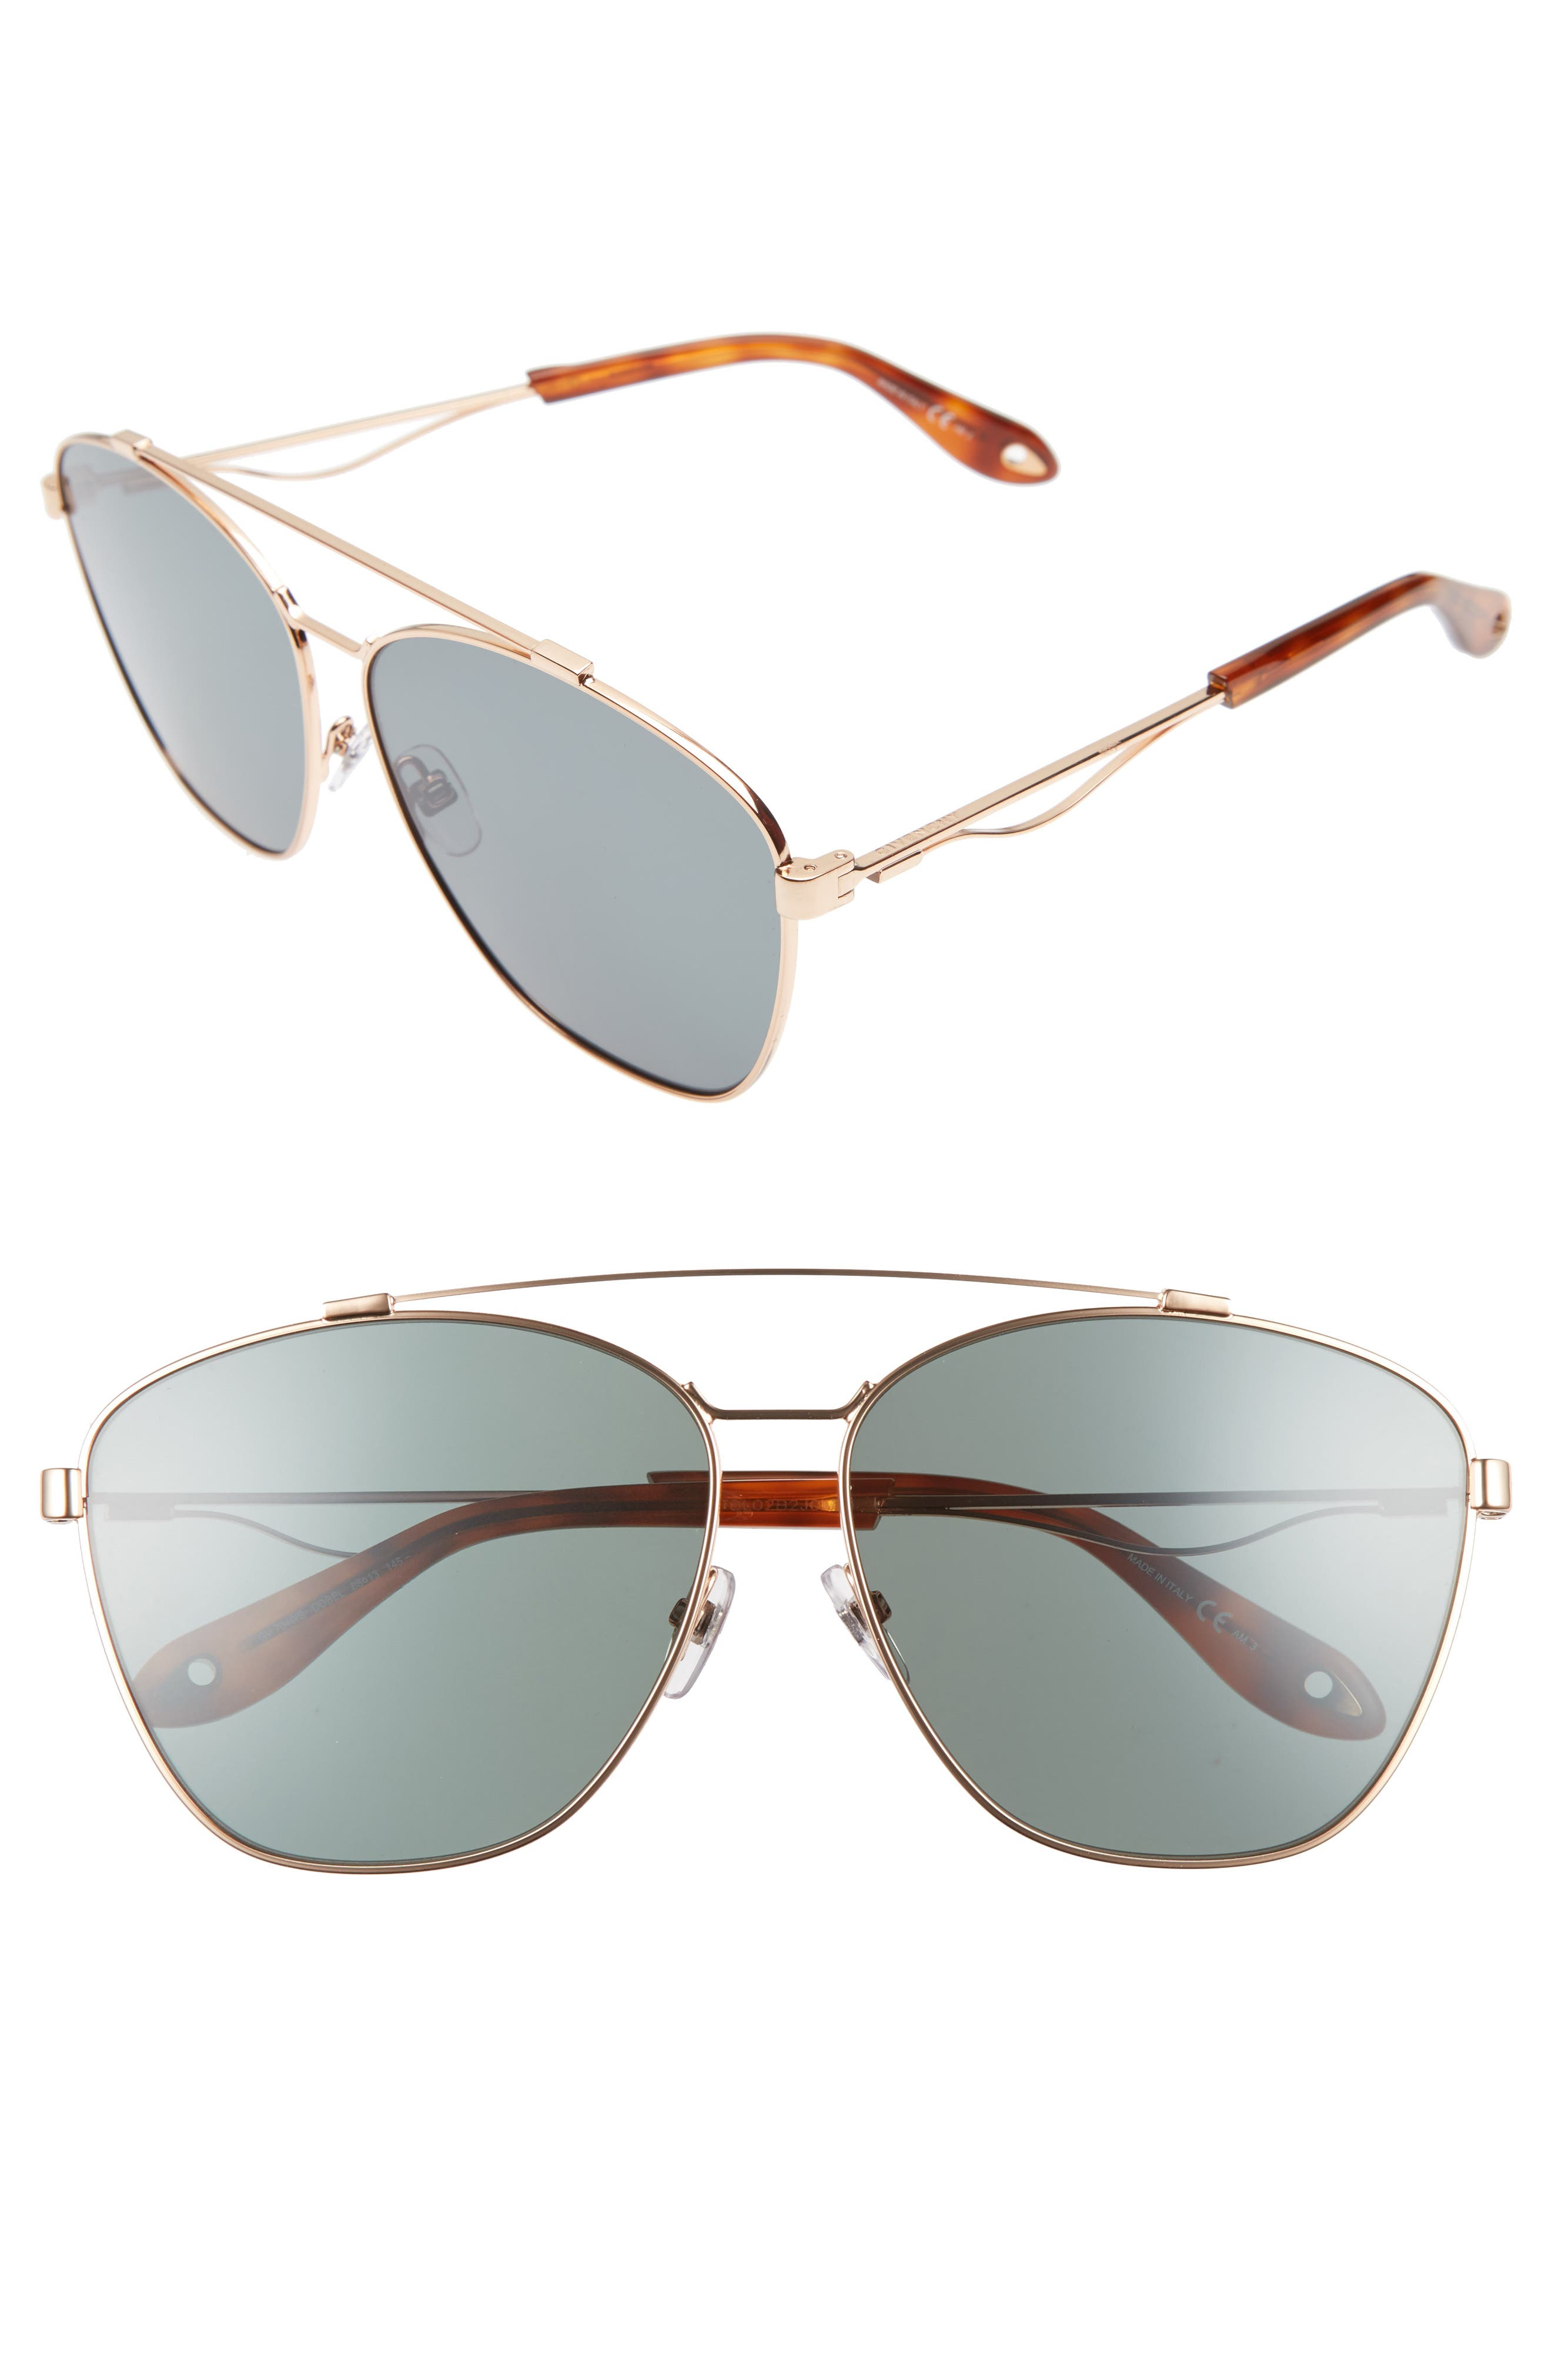 Main Image - Givenchy 65mm Round Aviator Sunglasses